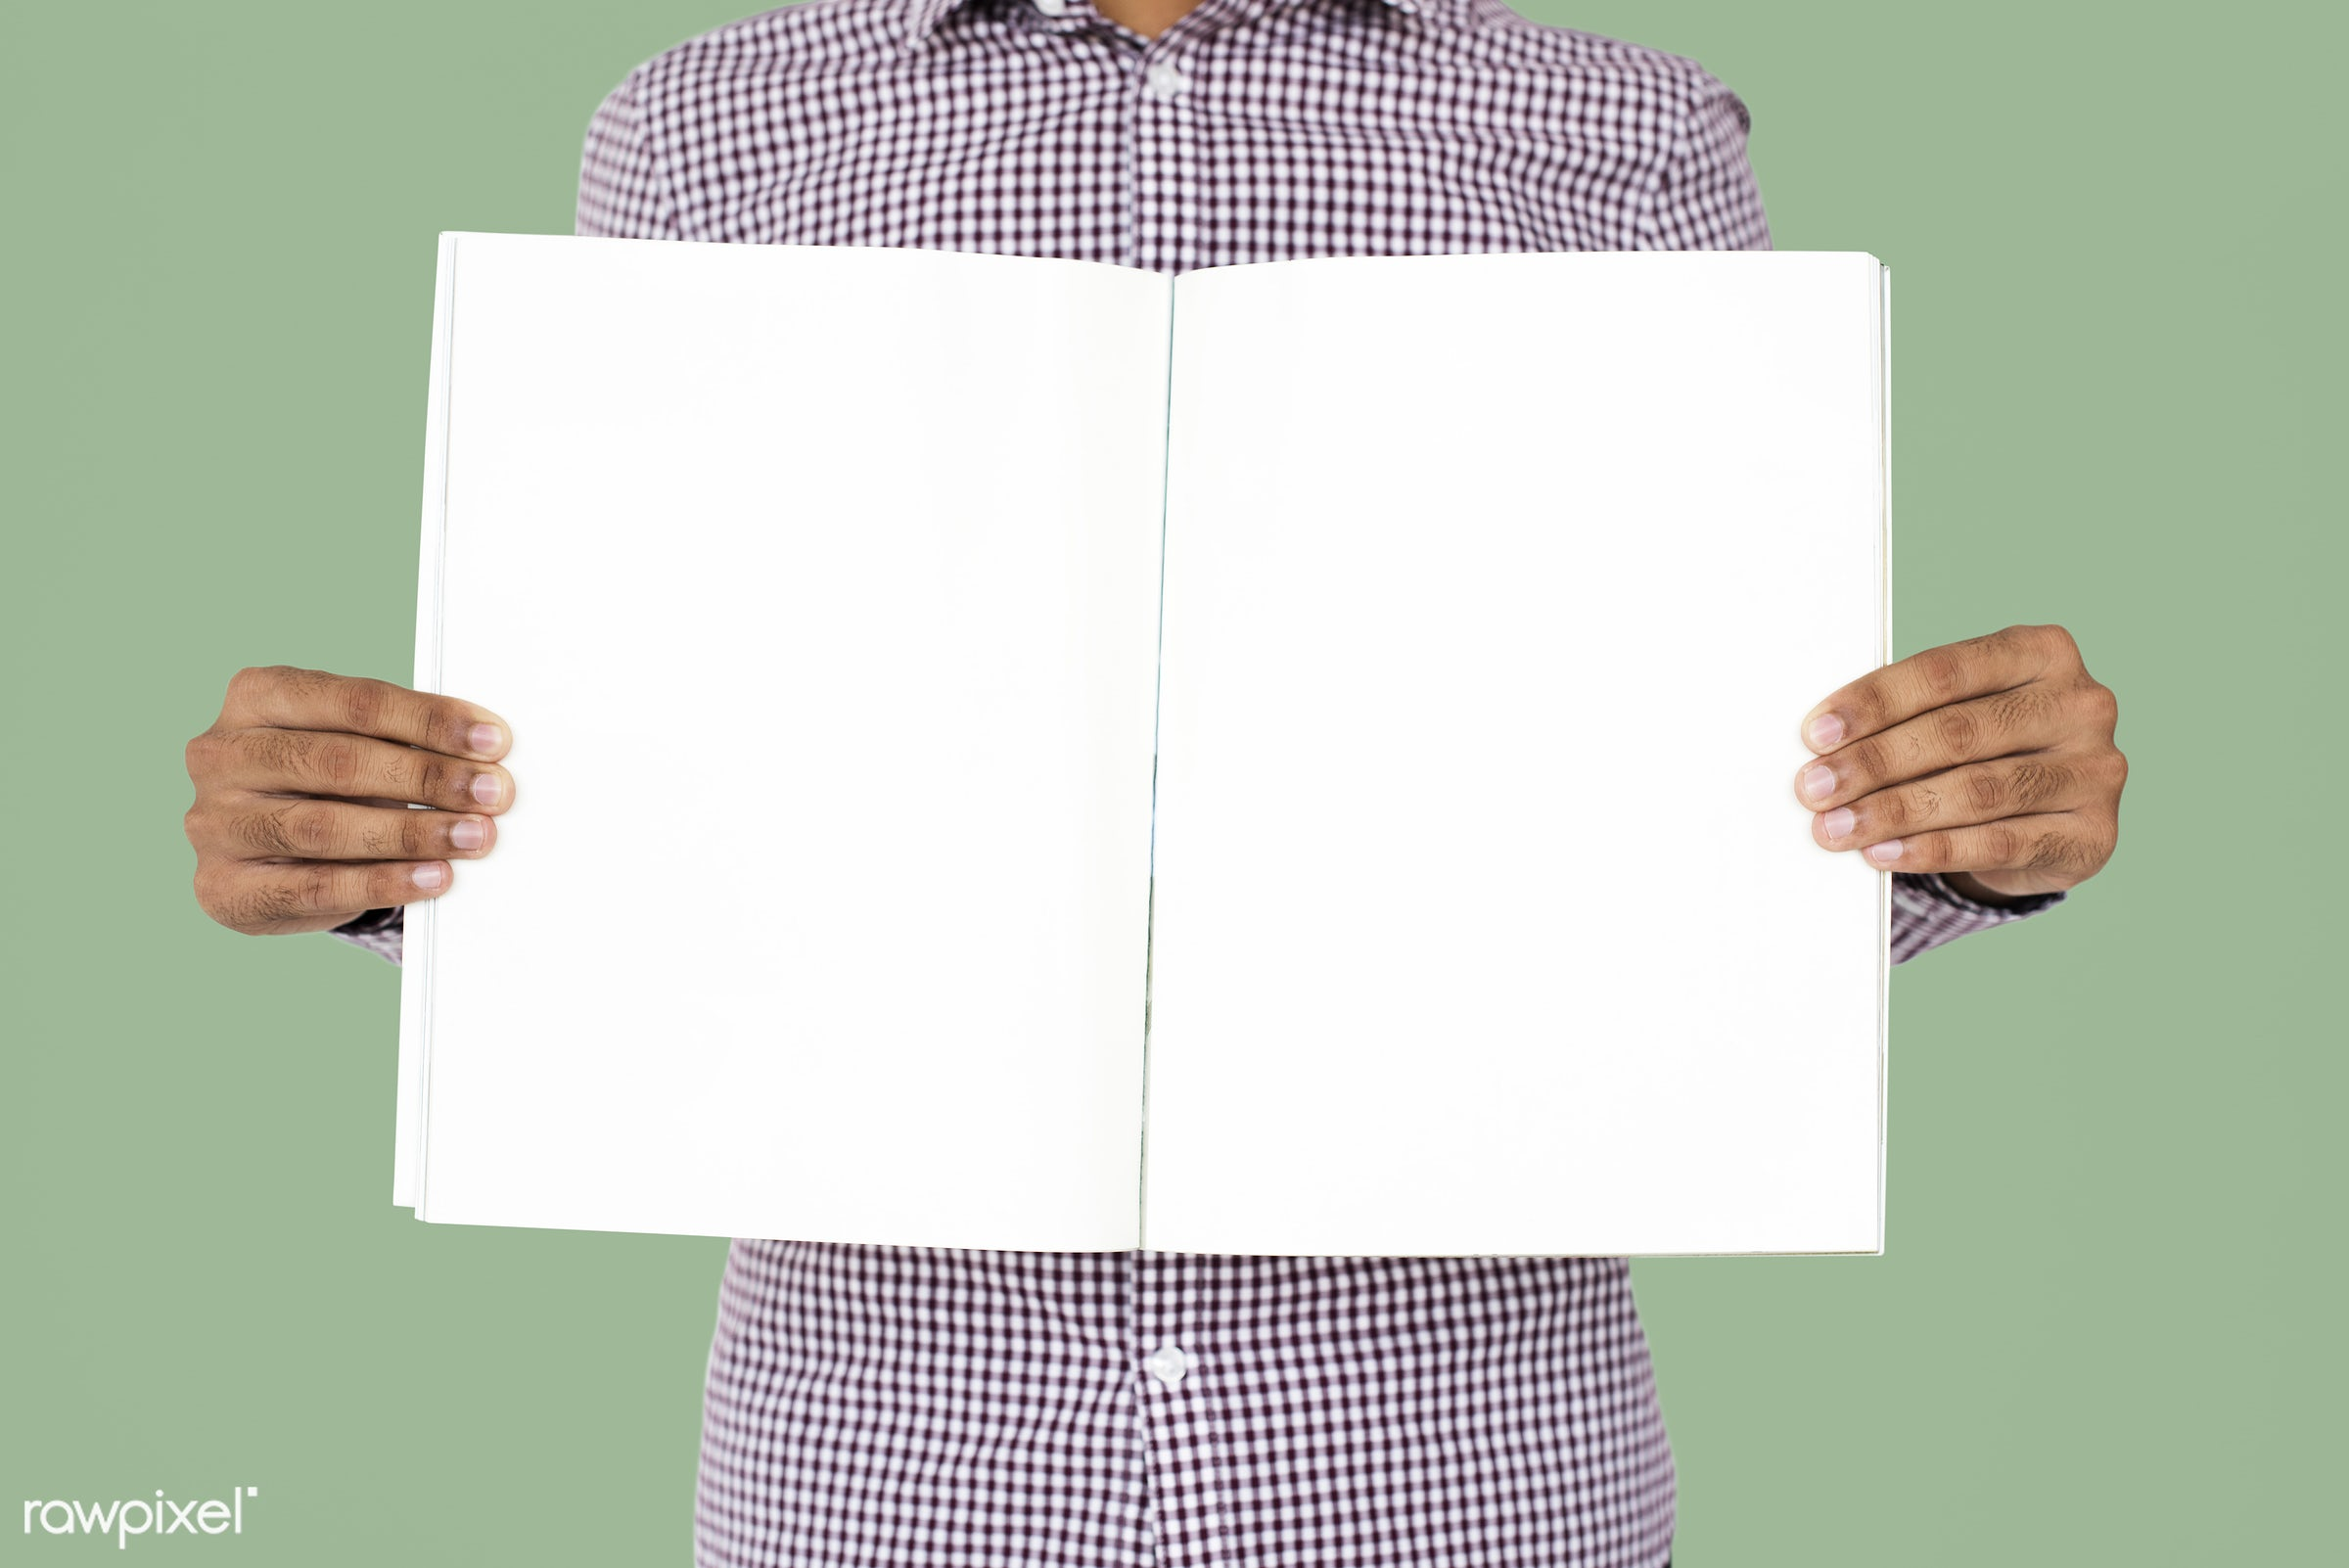 studio, expression, person, model, holding, copyspace, paper, advertising, people, empty, showing, sheet, man, banner,...